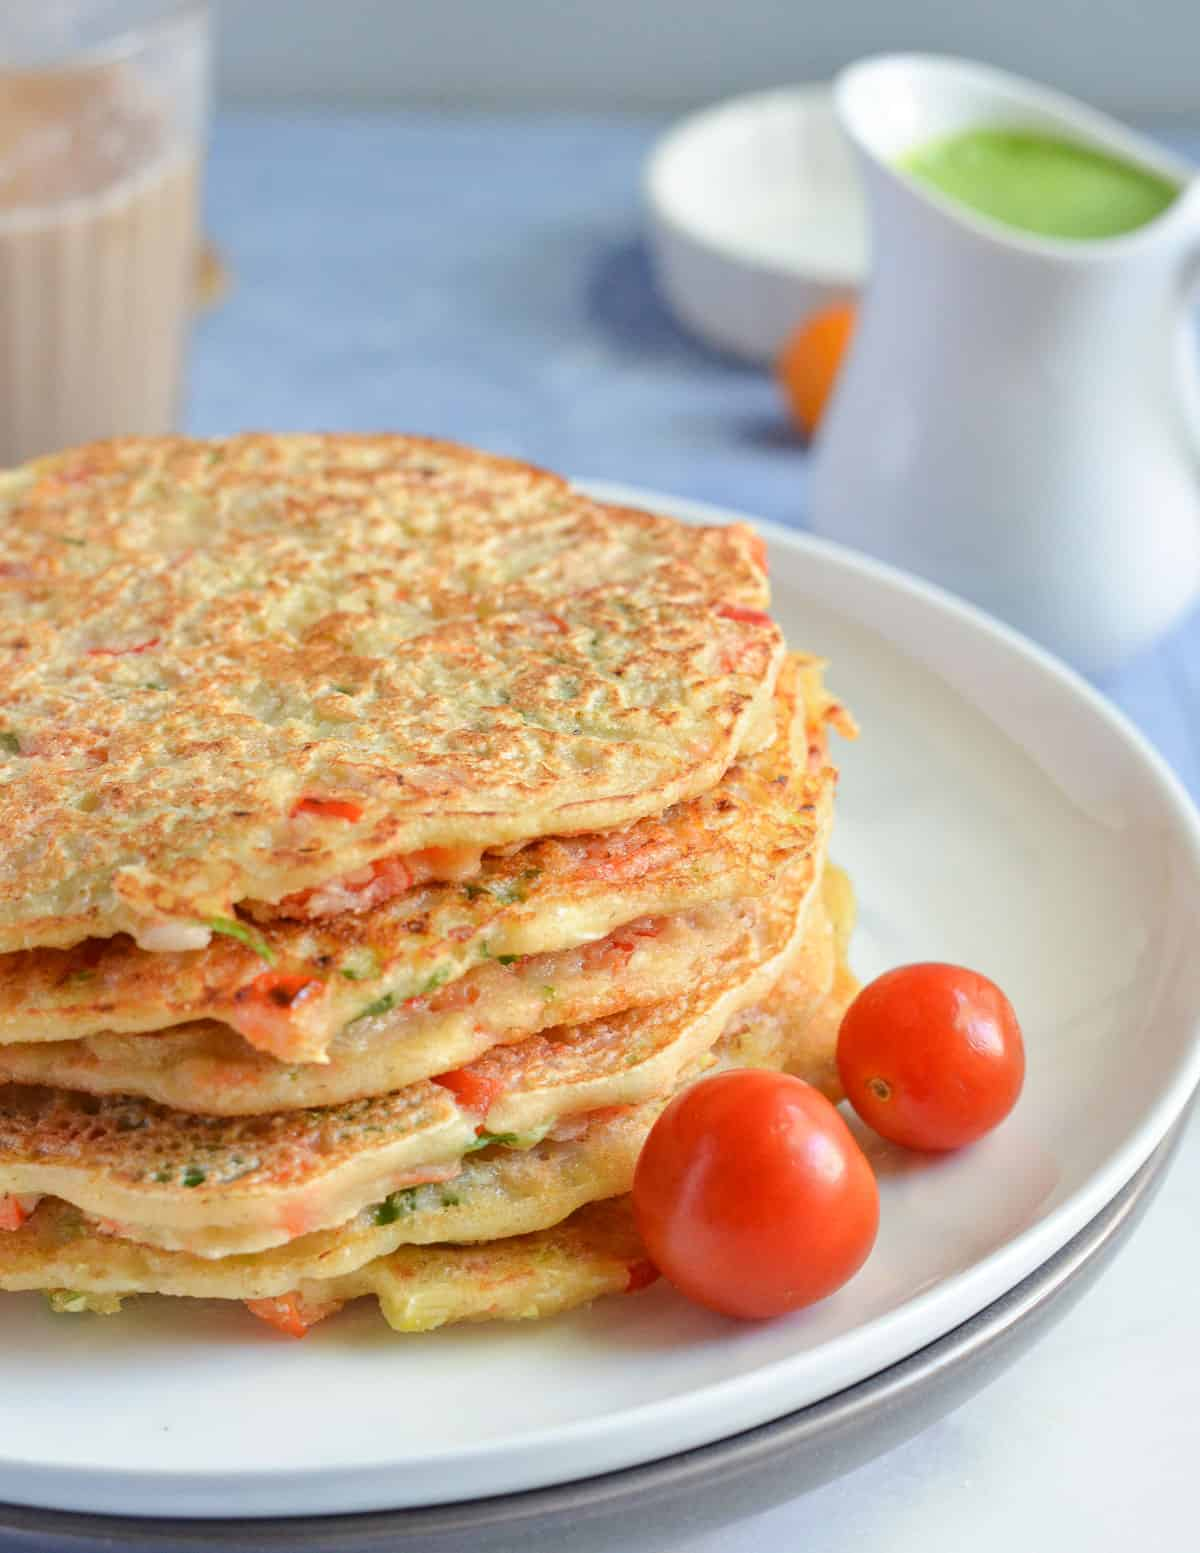 pancakes are stacked up in white plate with baby tomato